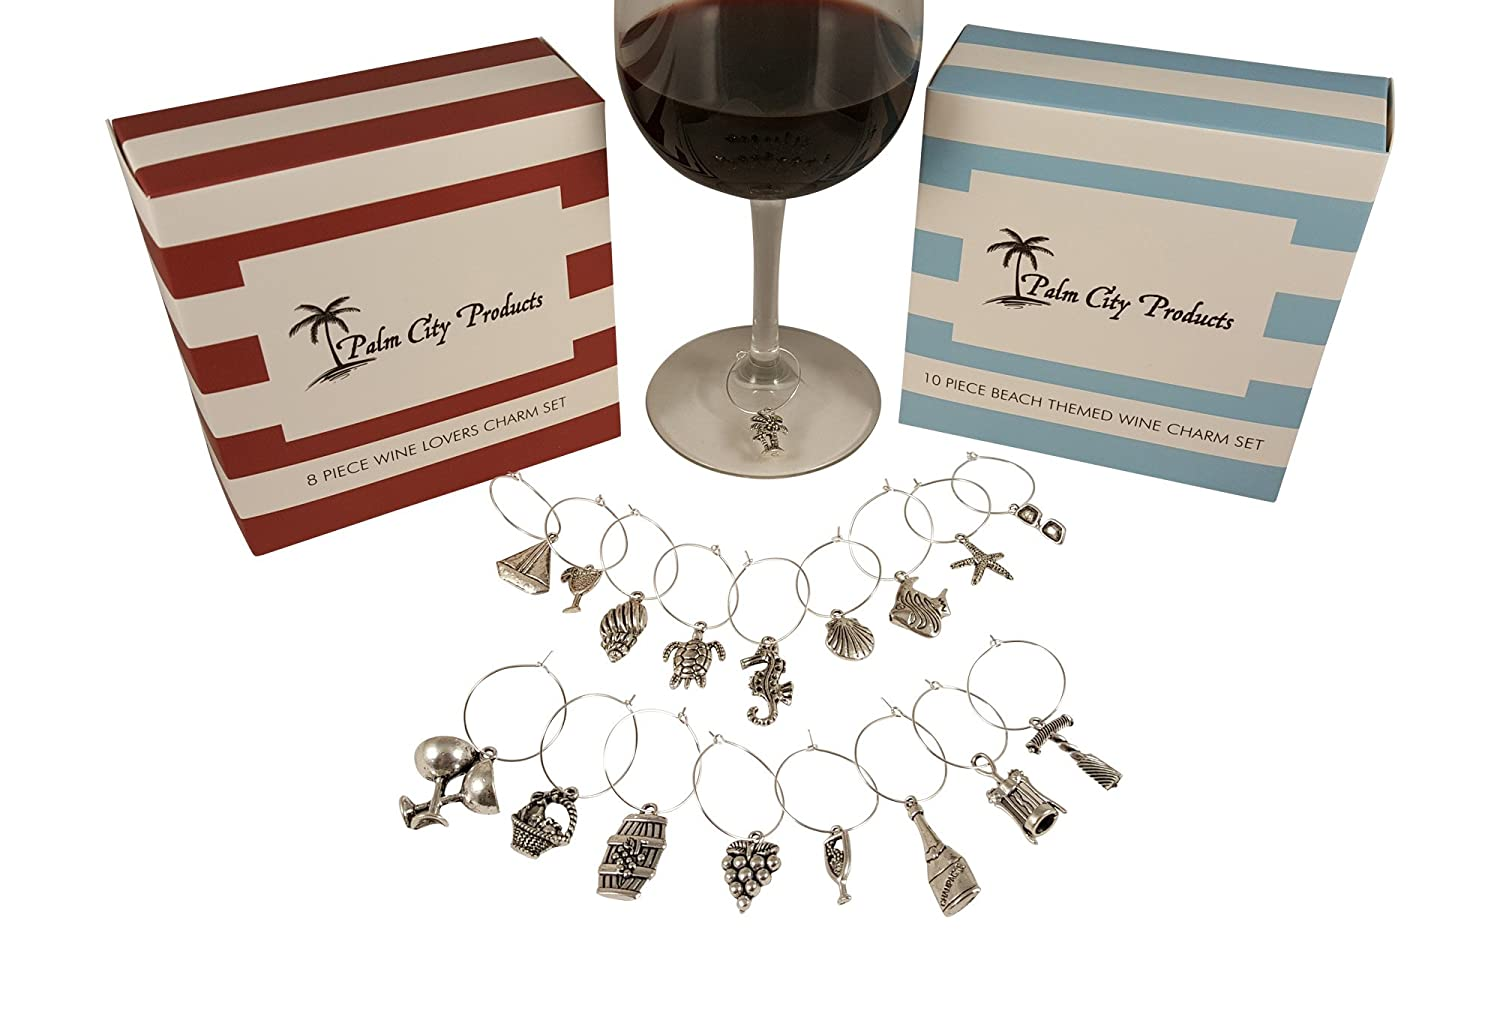 Bundle of Two Wine Charm Sets 18 Pieces Total Beach and Wine Themes